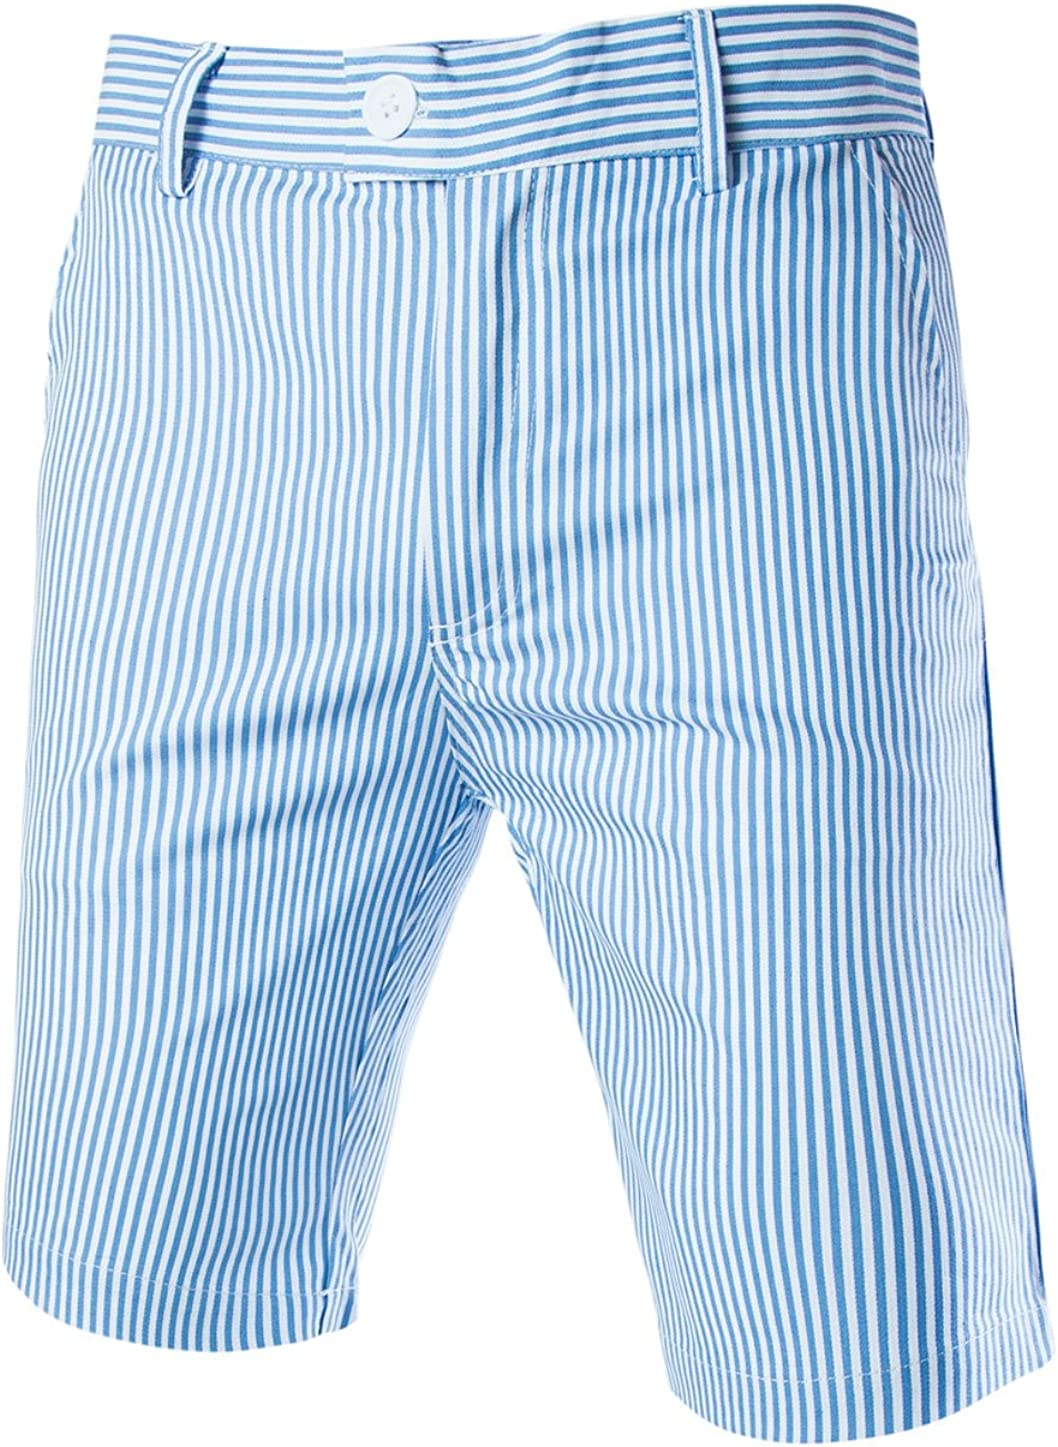 uxcell Men Summer Shorts Striped Slim Fit Flat Front Walk Chino Shorts